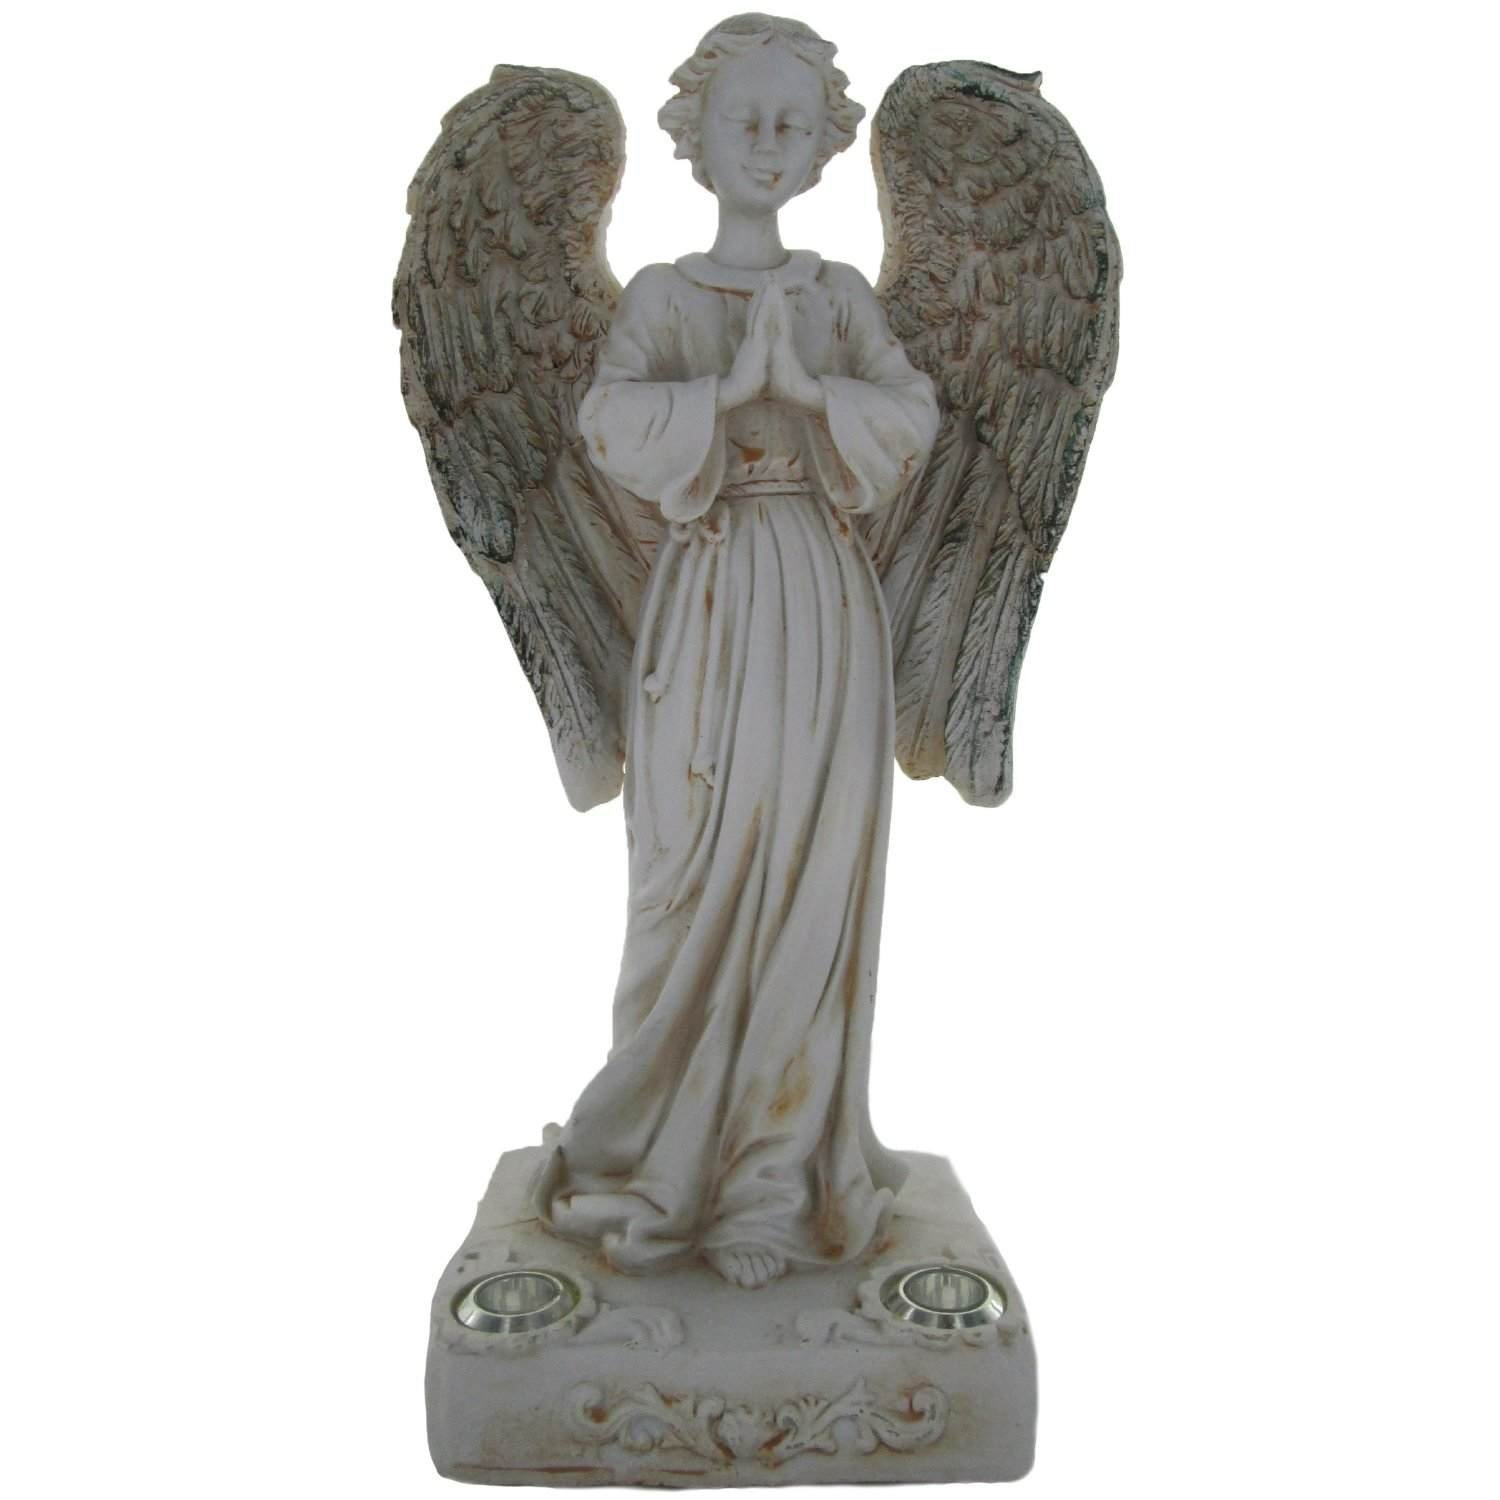 Solar Power 2 Amber LED Praying Angel Statue Garden Light by Xiong's Trading (Image #1)